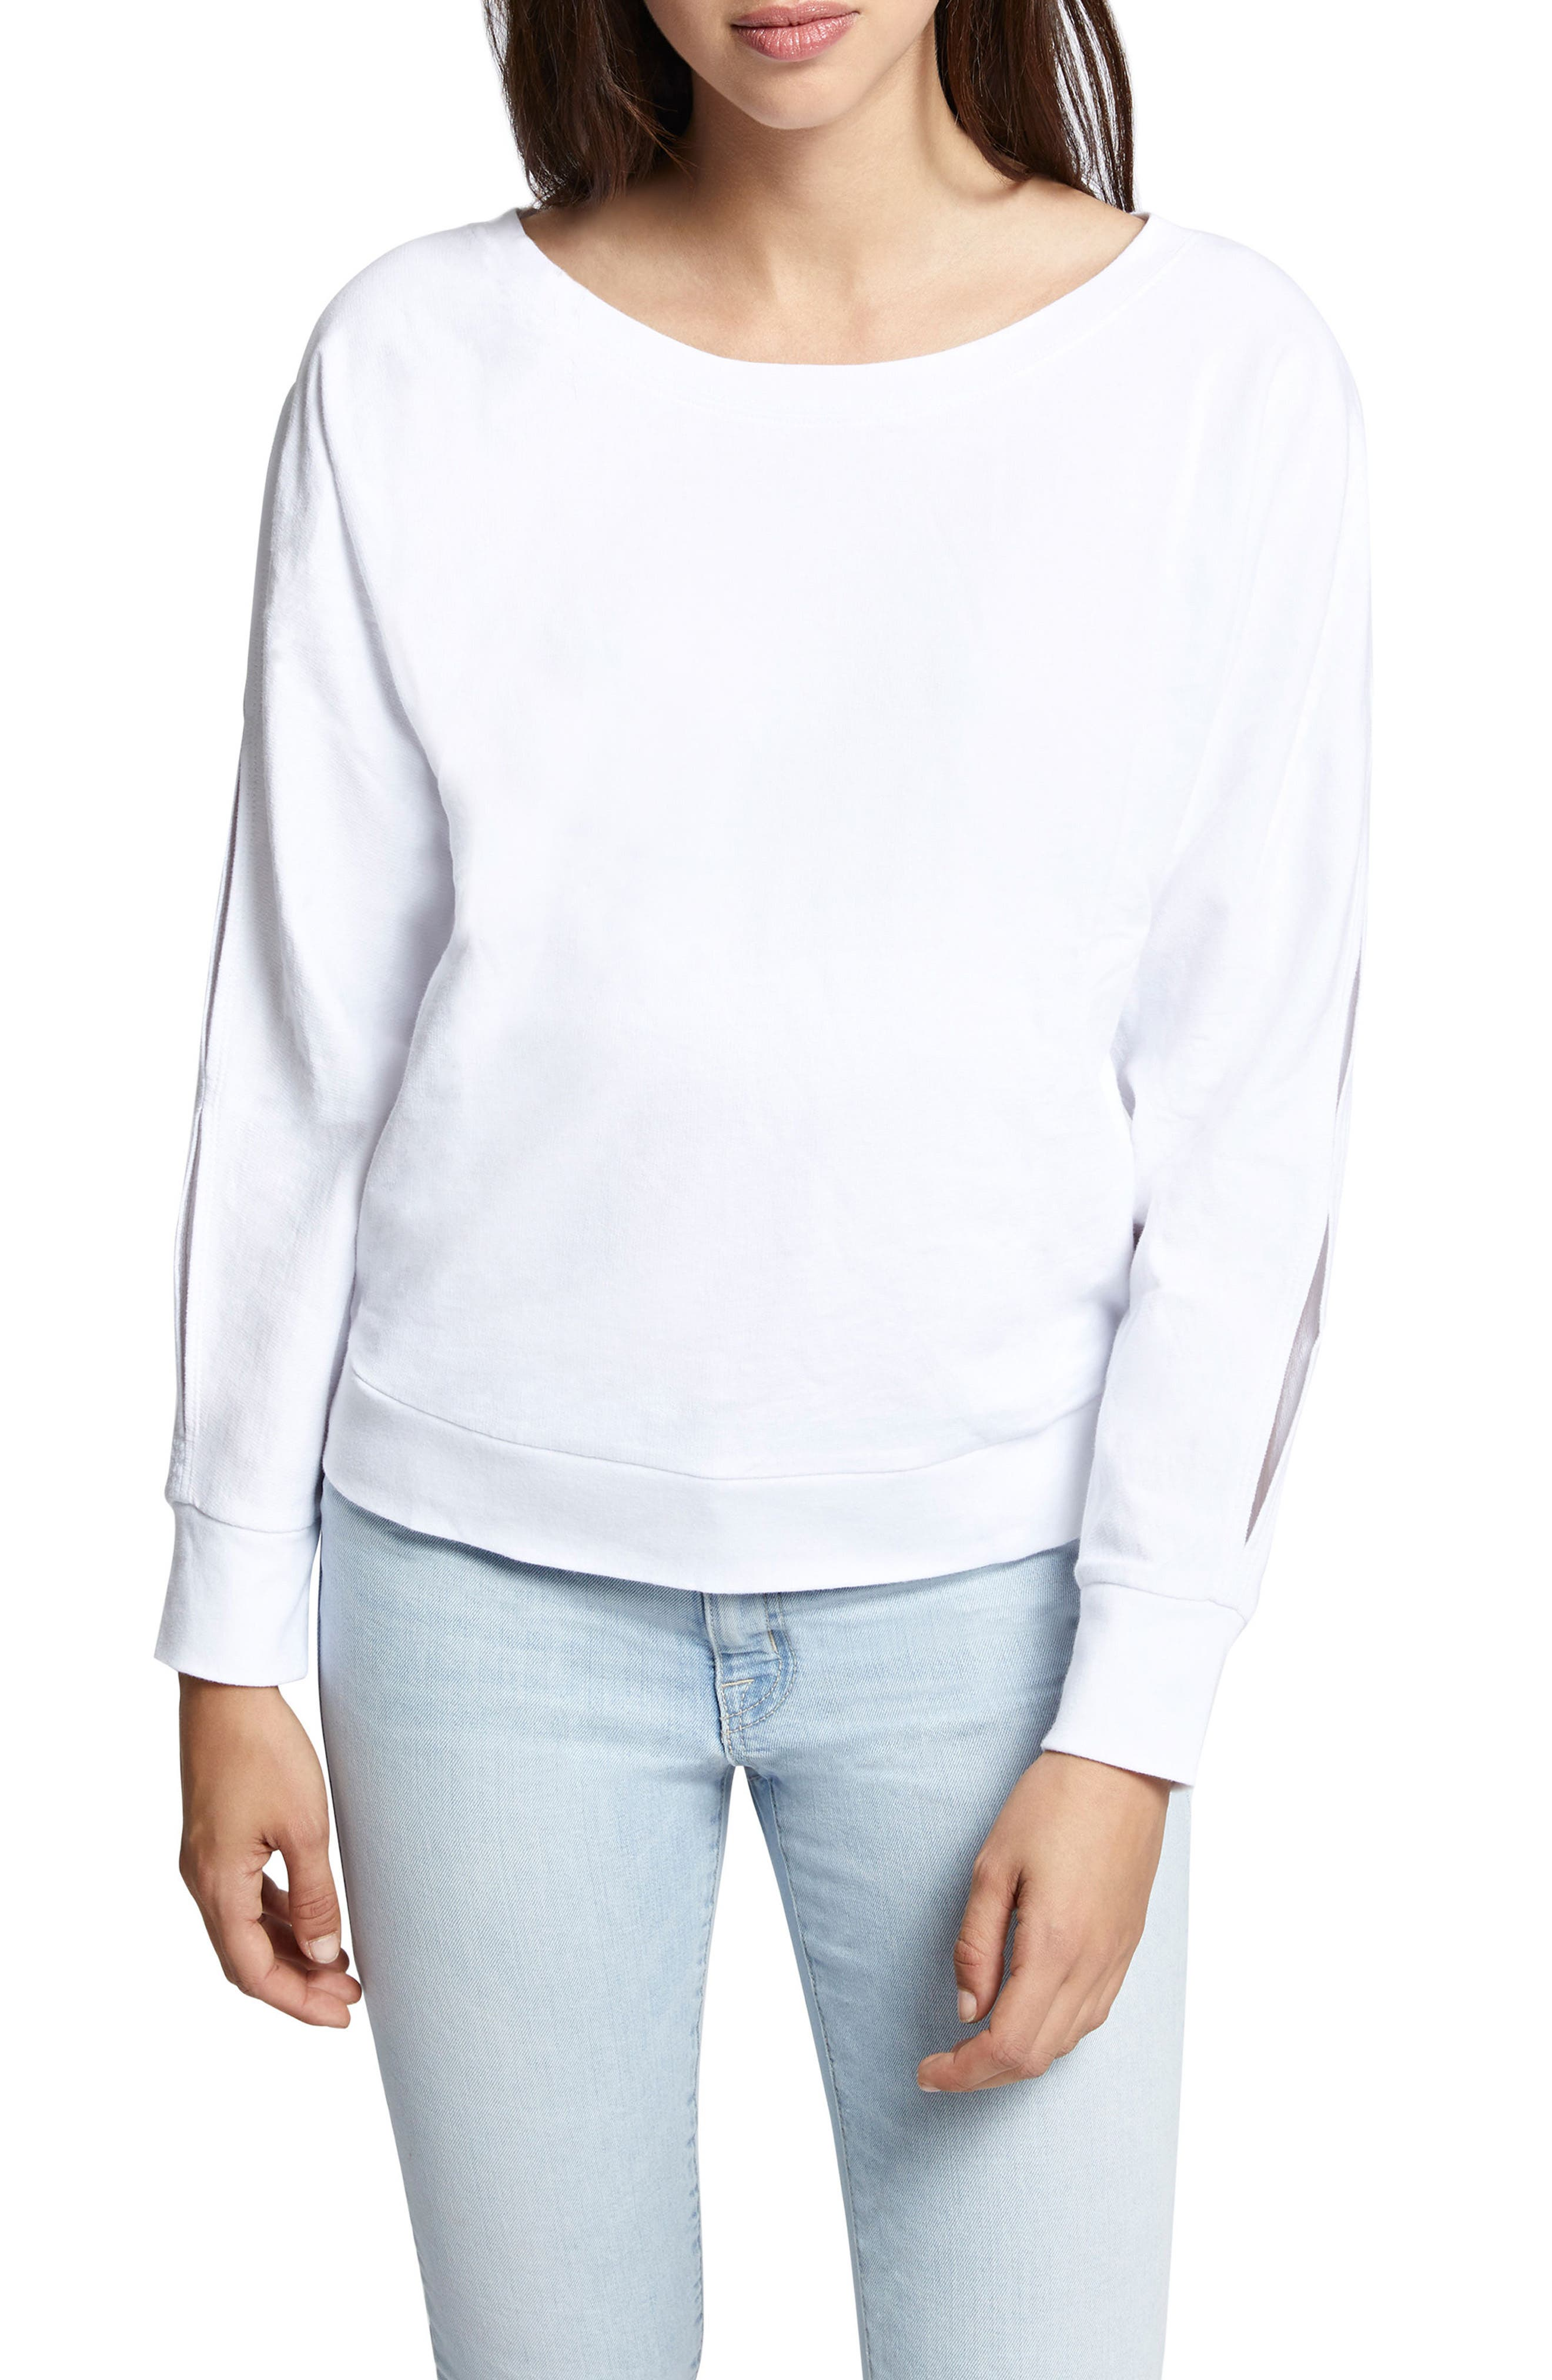 Chill Out Sweatshirt,                         Main,                         color, White